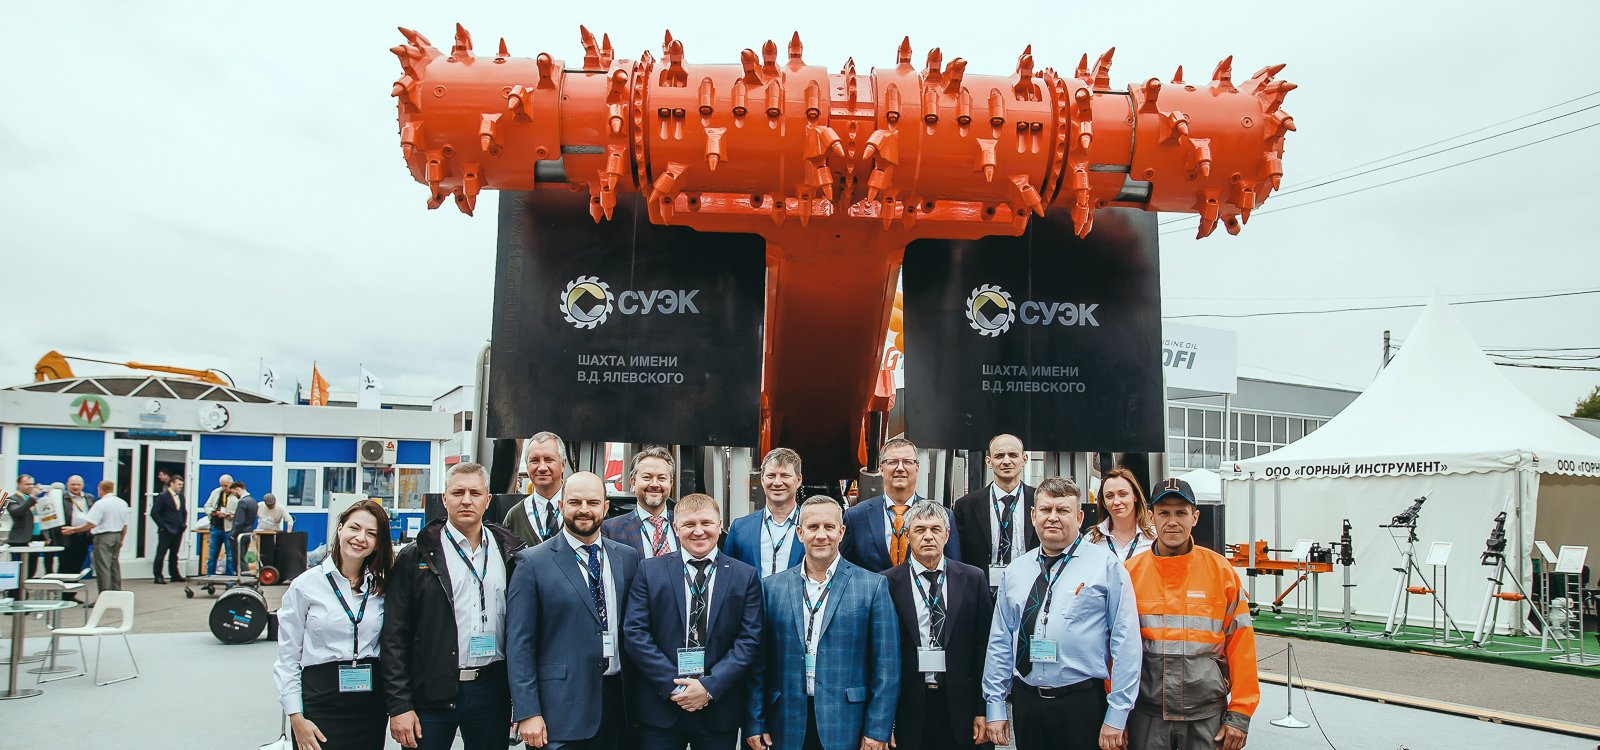 <p>Representatives from Sandvik Mining and Rock Technology present an MB670-1 bolter miner to SUEK-Kuzbass JSC at the Ugol Rossii & Mining exhibition.</p>